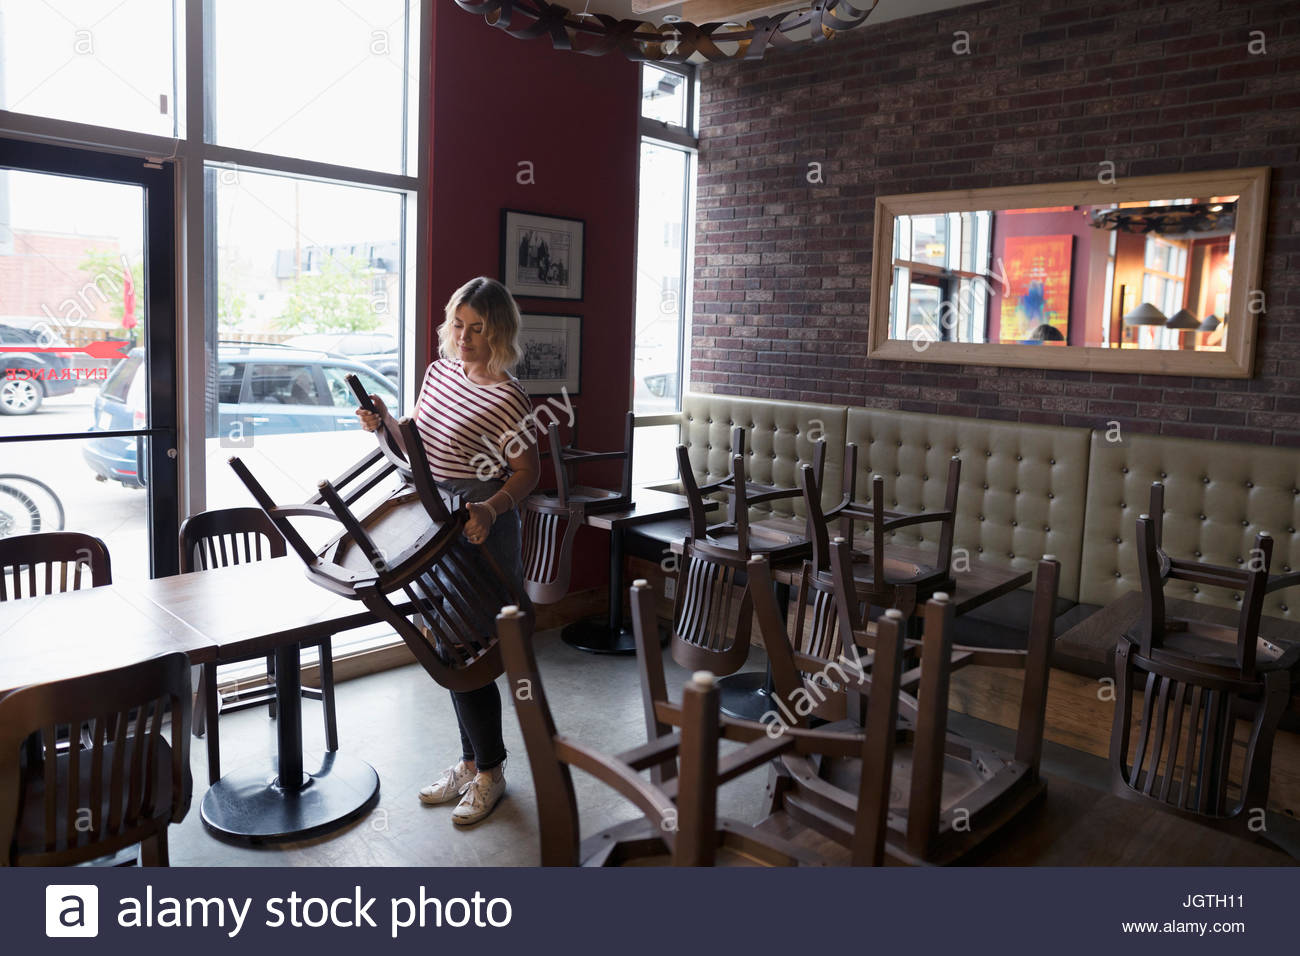 Waitress turning chairs onto tables, closing at diner - Stock Image